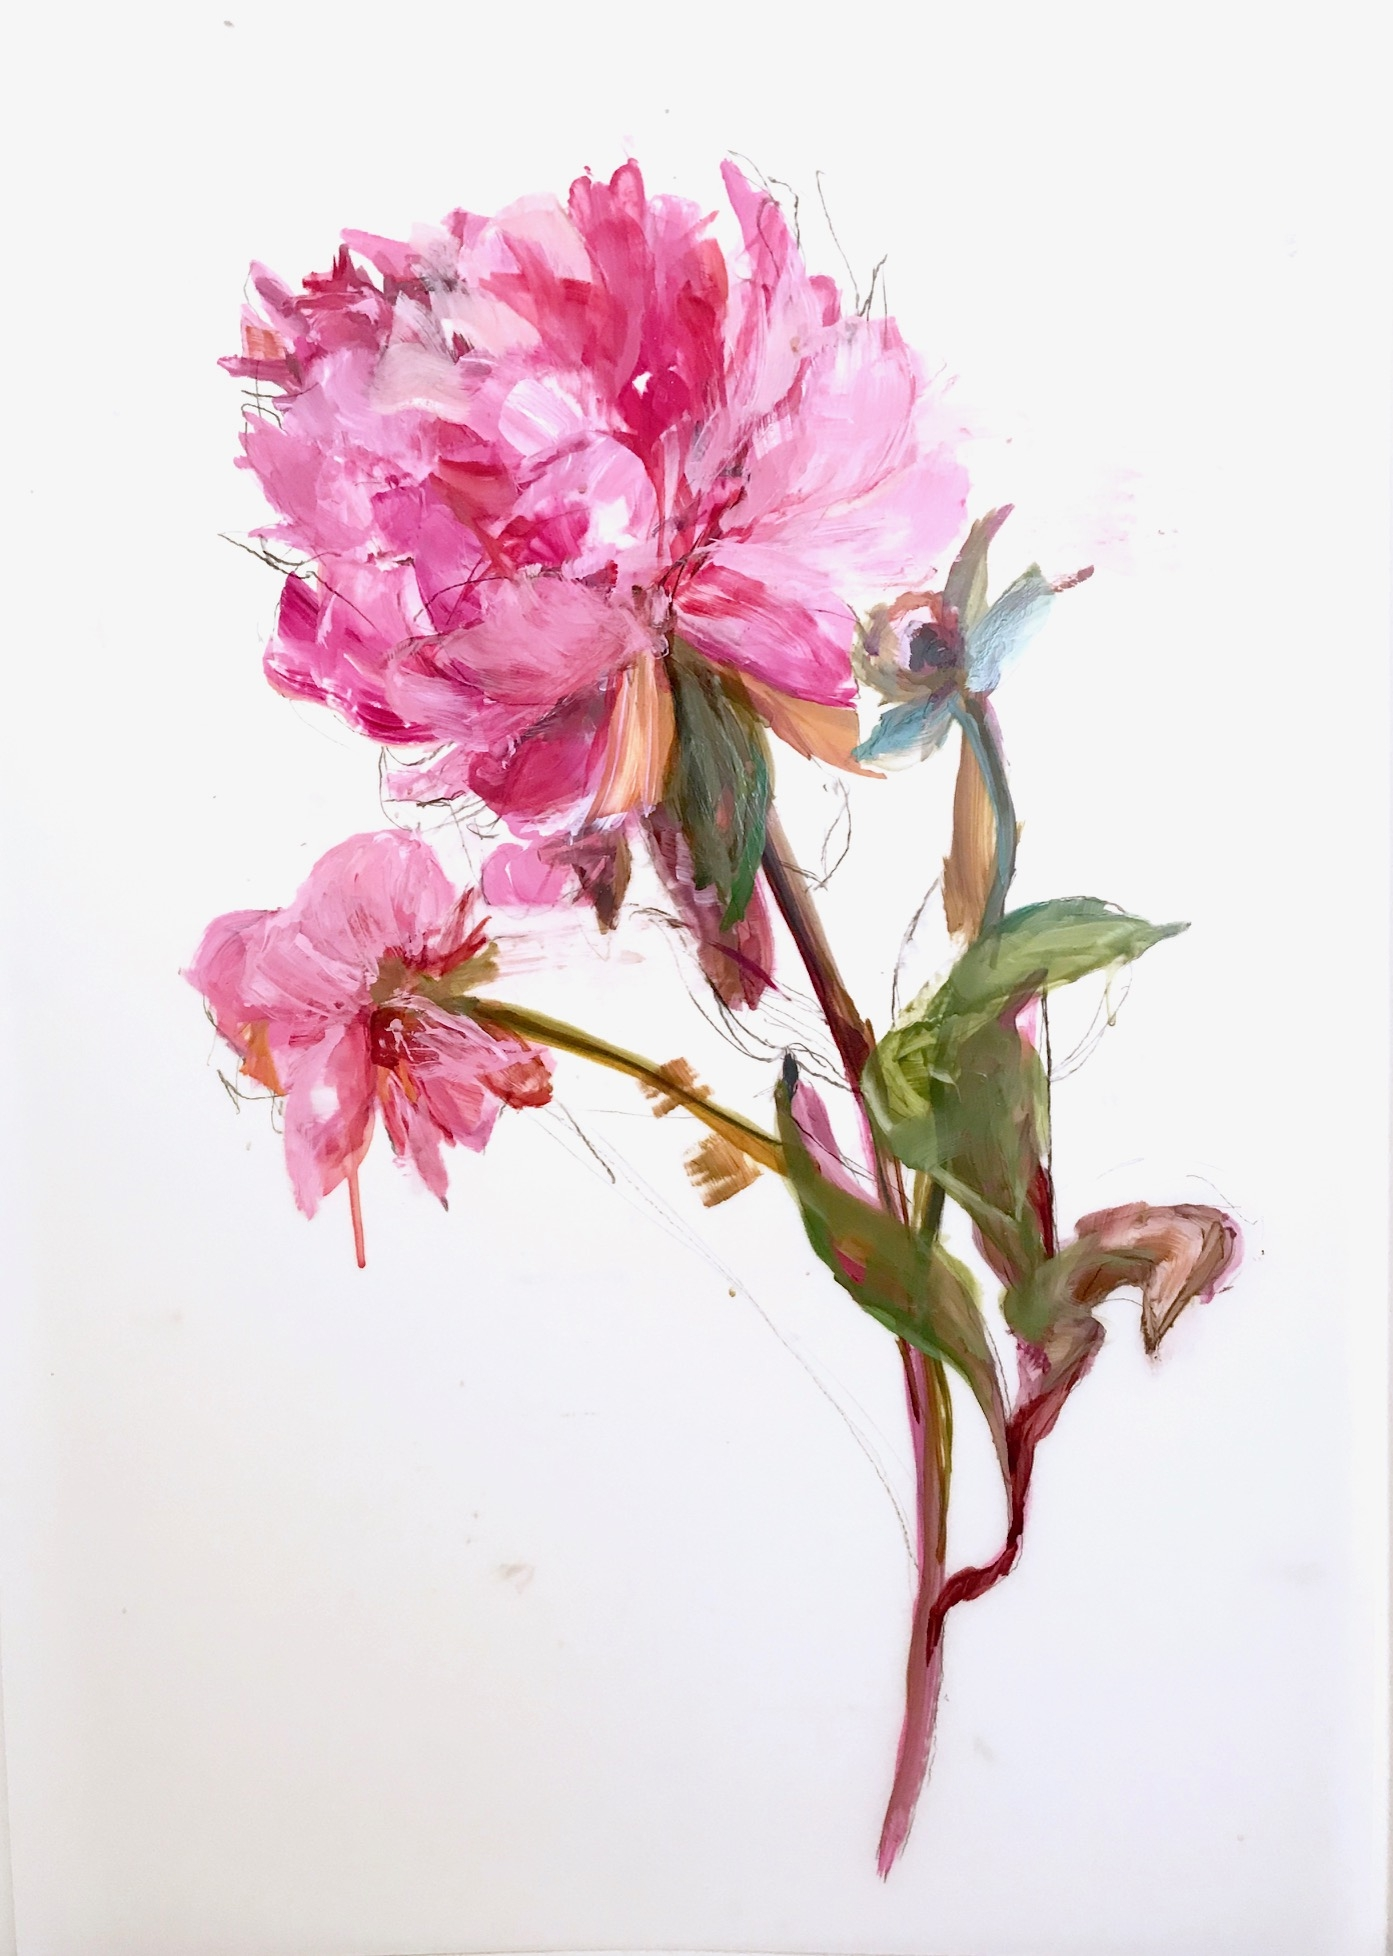 Magenta Peonies 4 by Madeleine Lamont